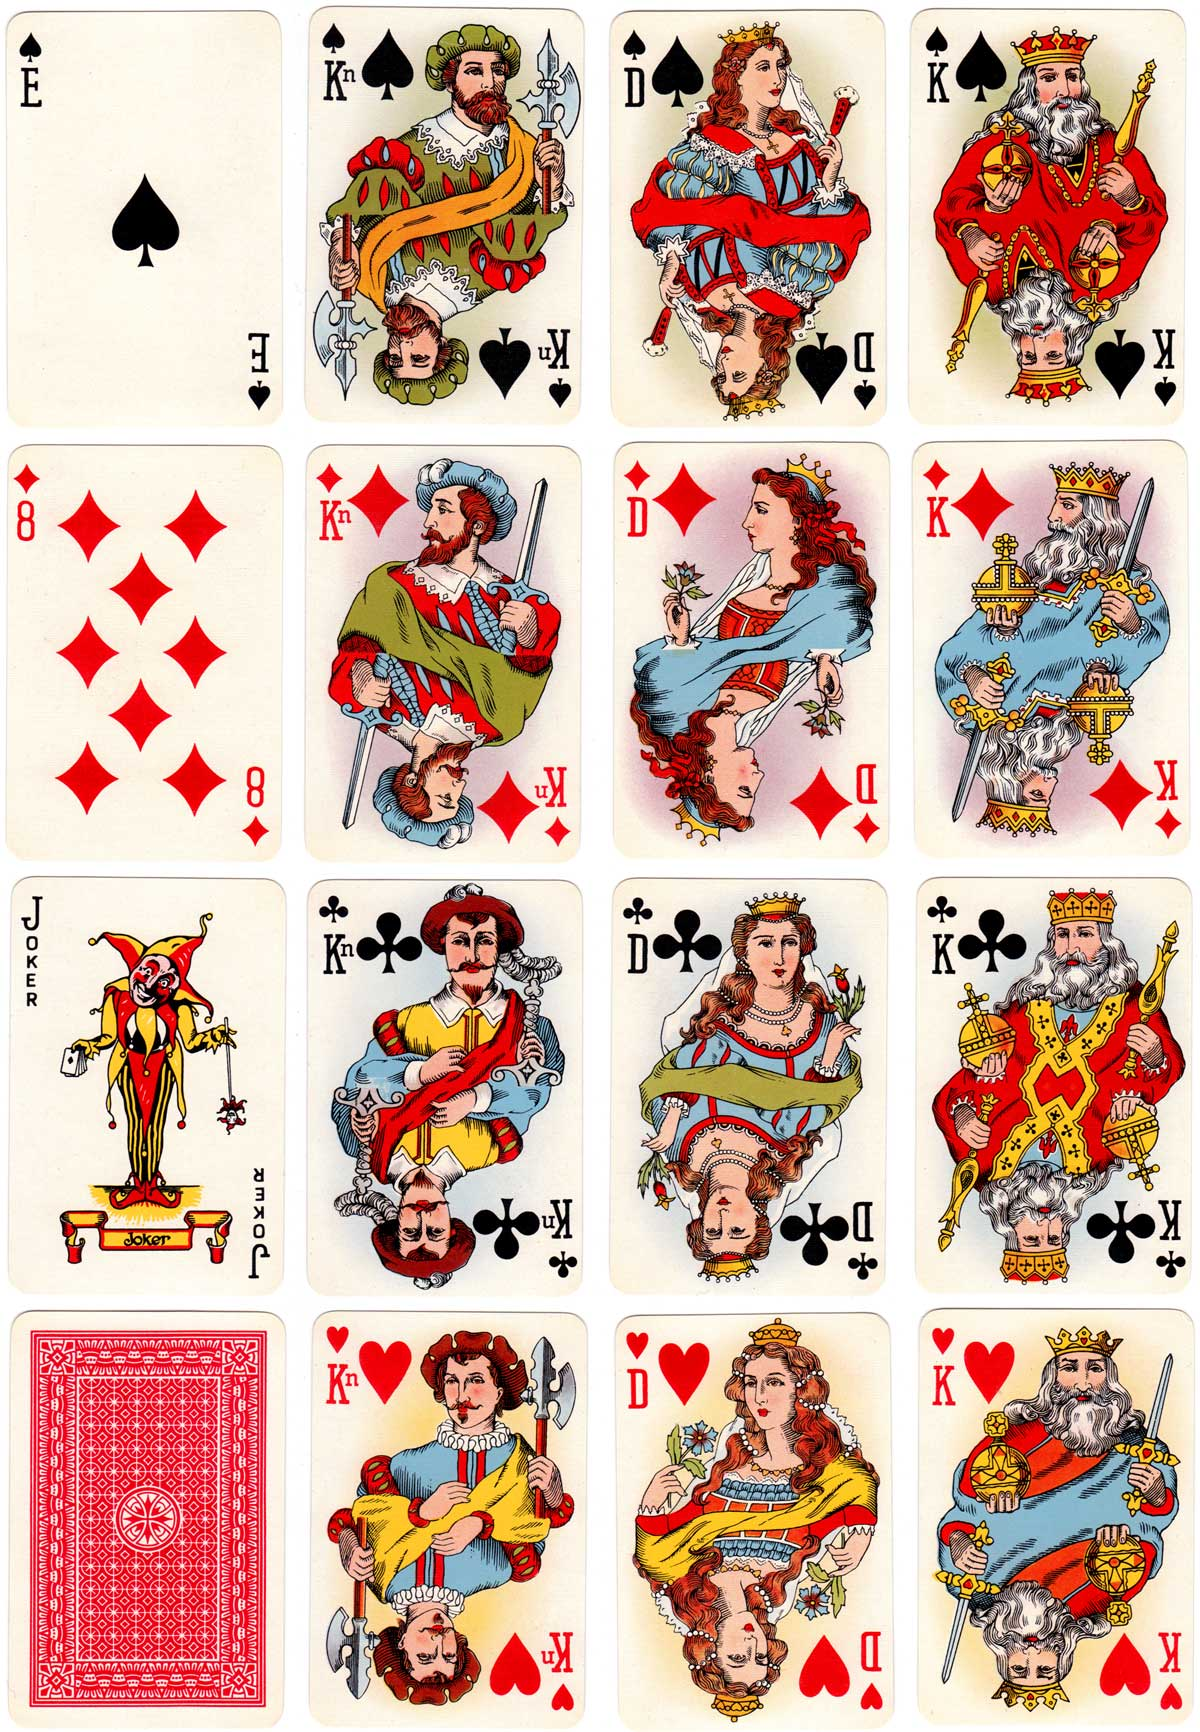 501 playing cards by Alf Cooke